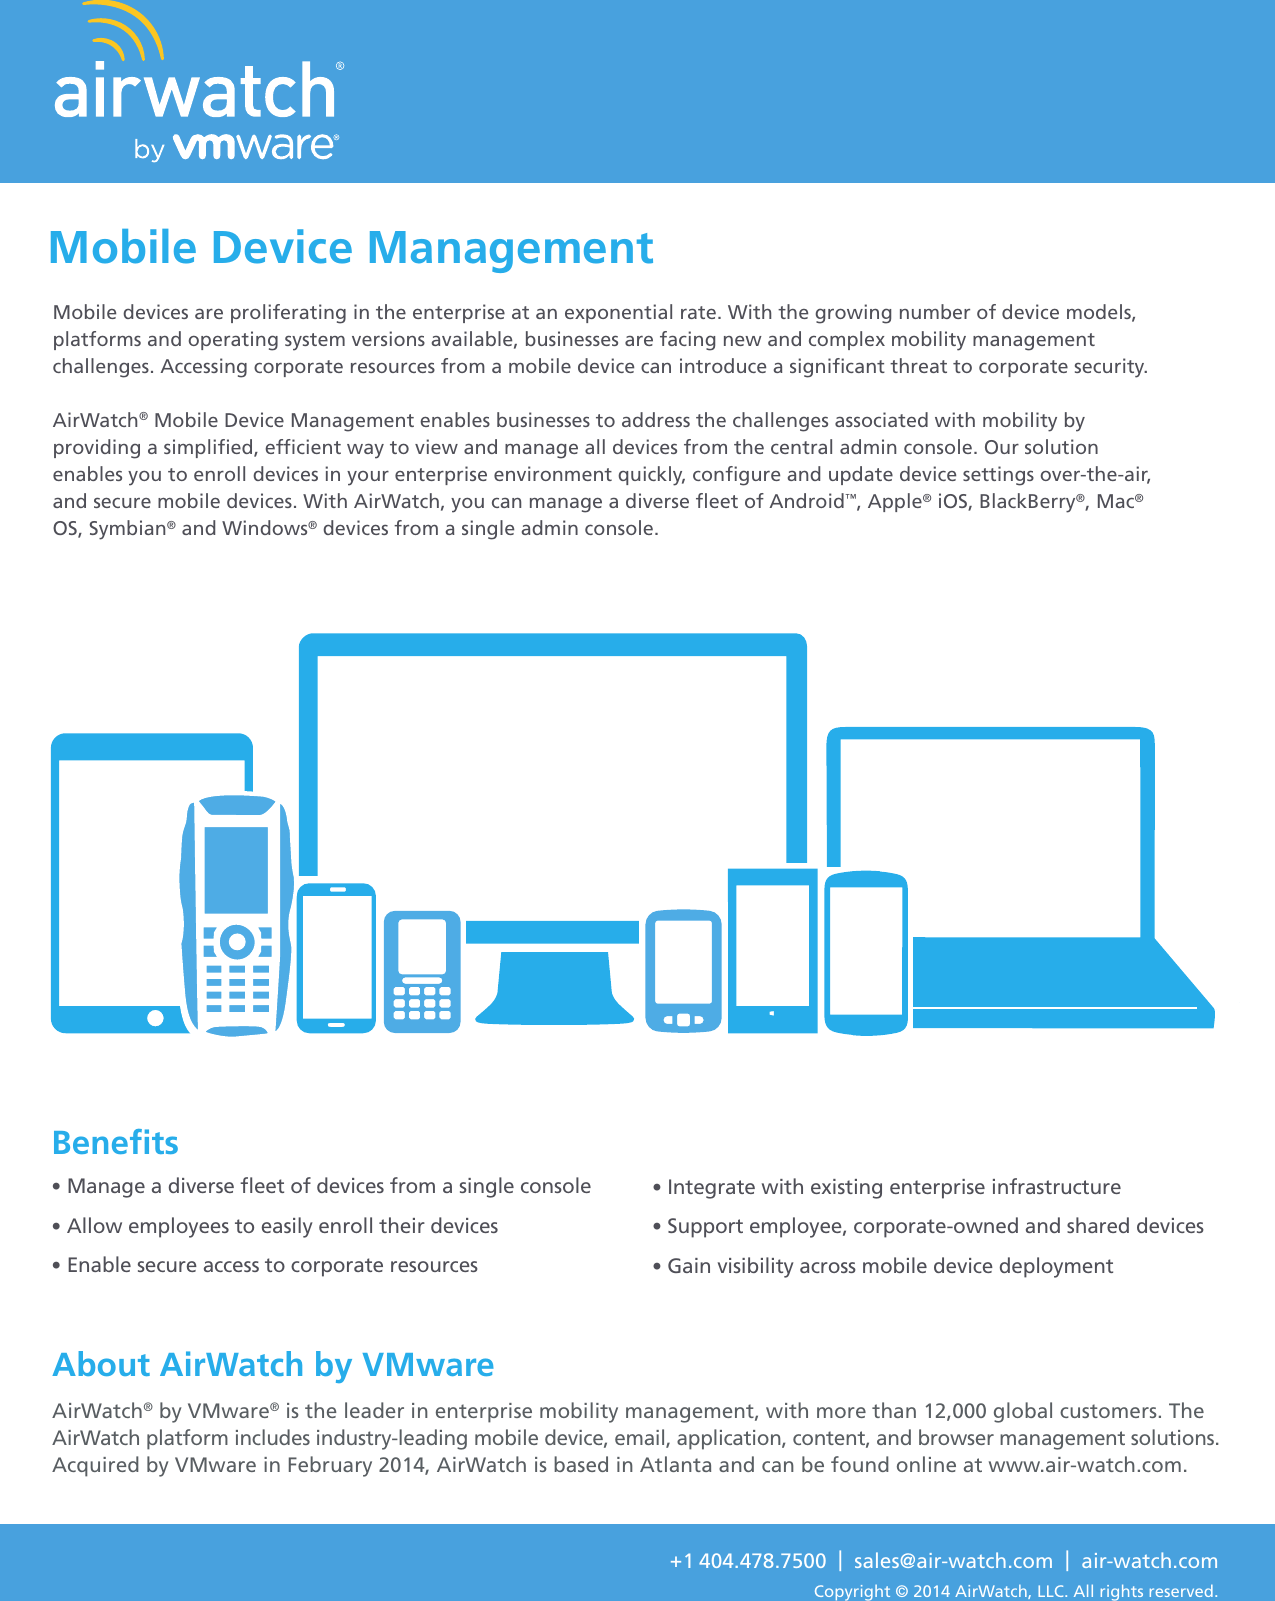 AirWatch By VMware Mobile Device Management Air